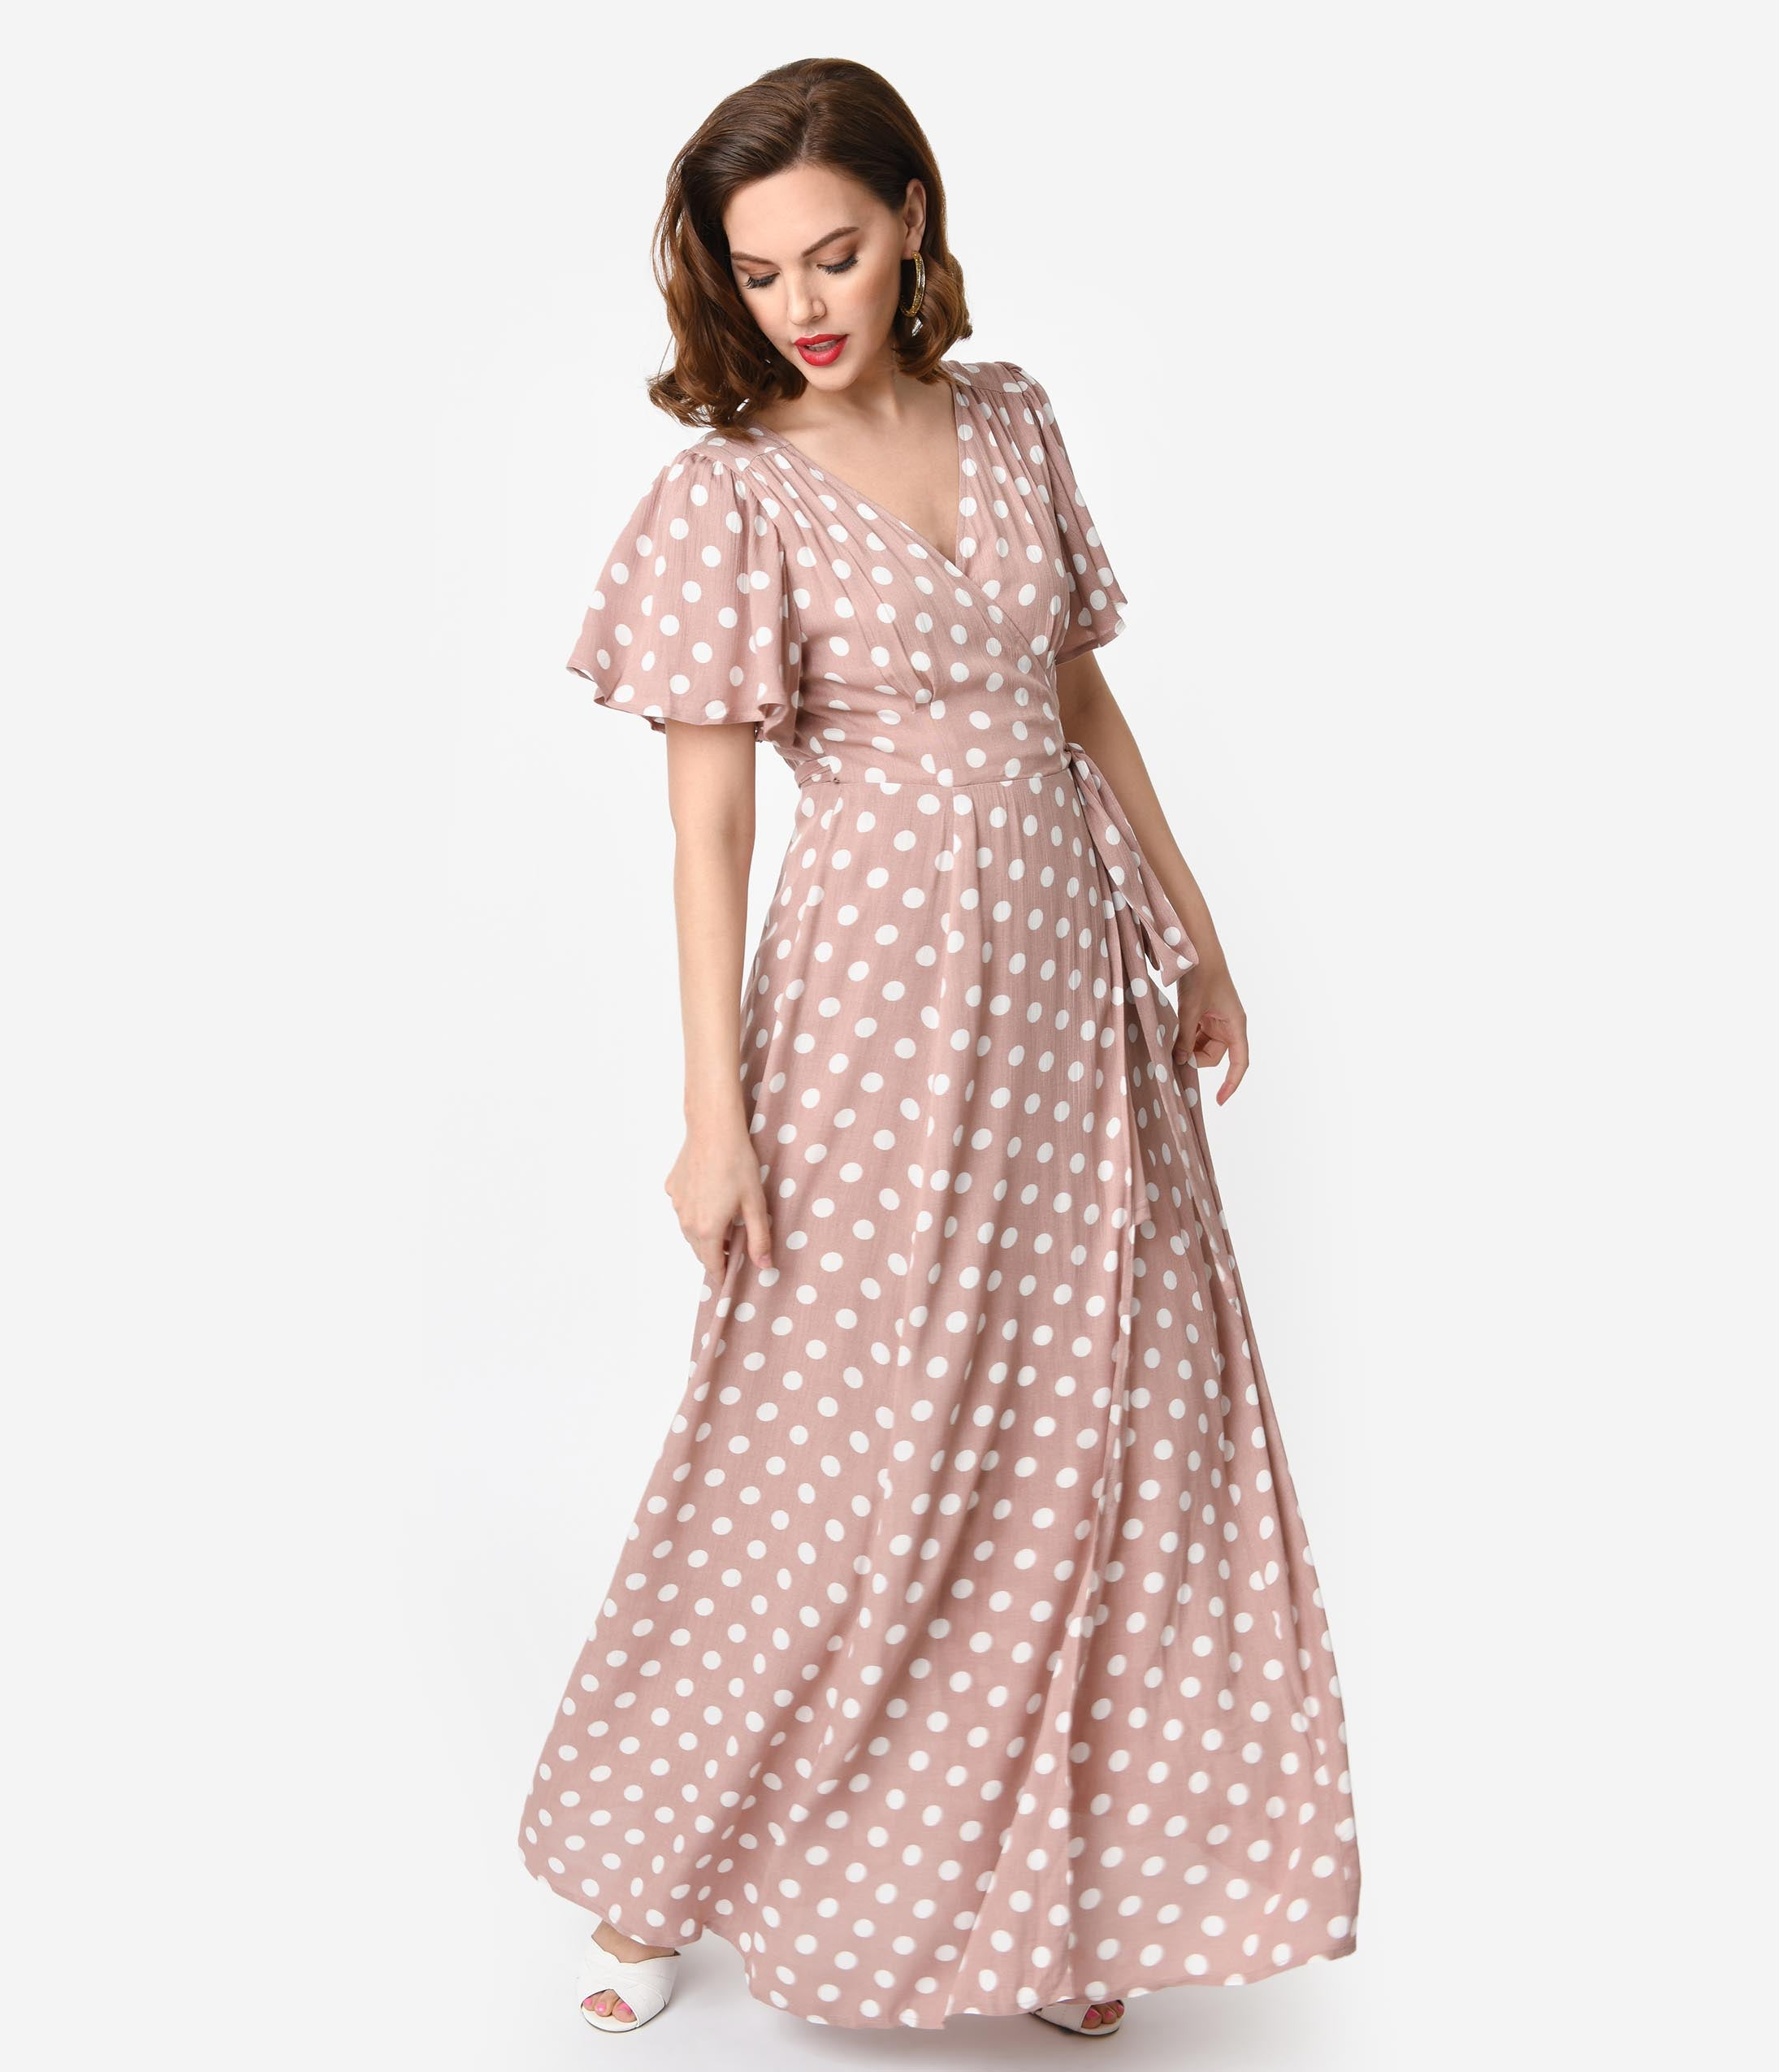 c1000d5da9 Vintage Style Dusty Pink   Ivory Polka Dot Flutter Sleeve Maxi Wrap Dress